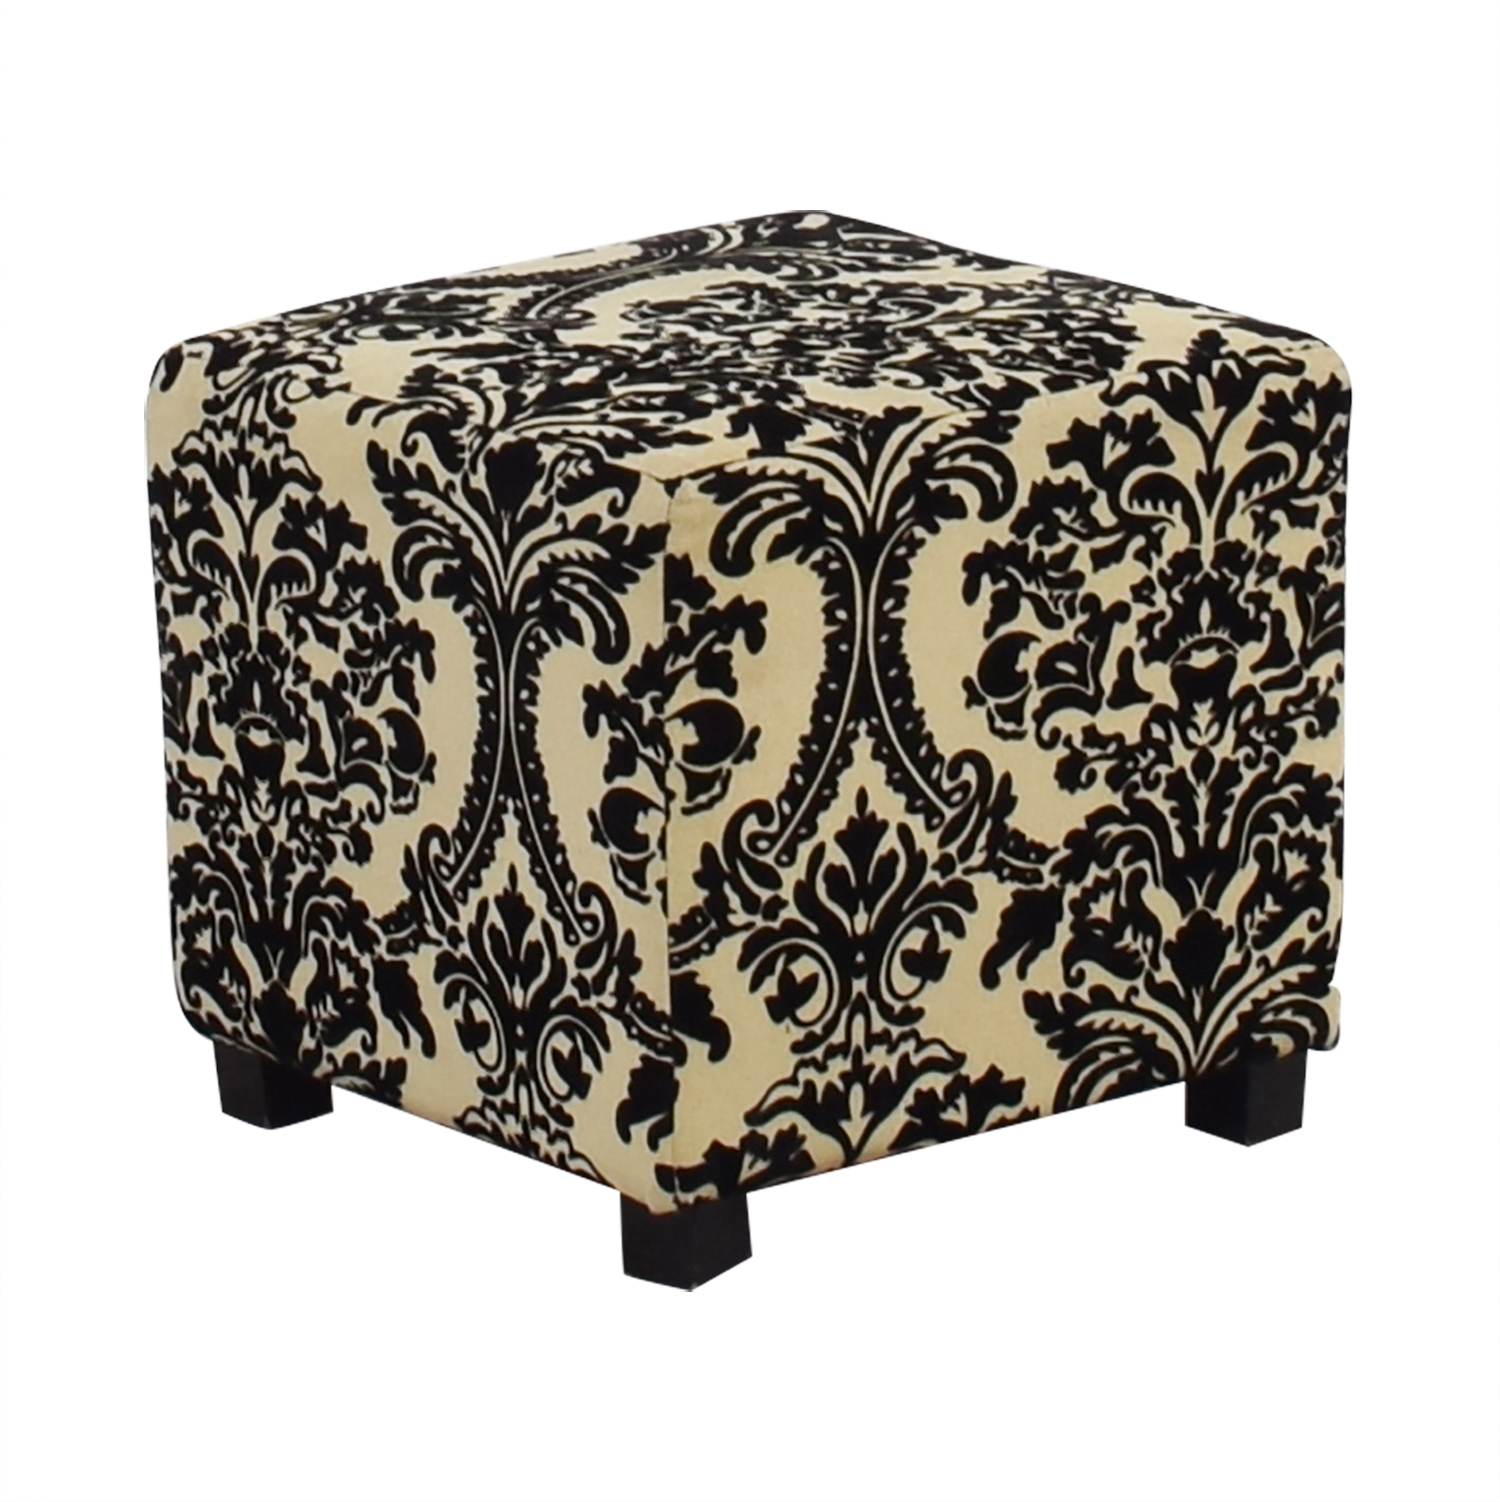 Bed Bath & Beyond Bed Bath & Beyond Black & White Ottoman Ottomans